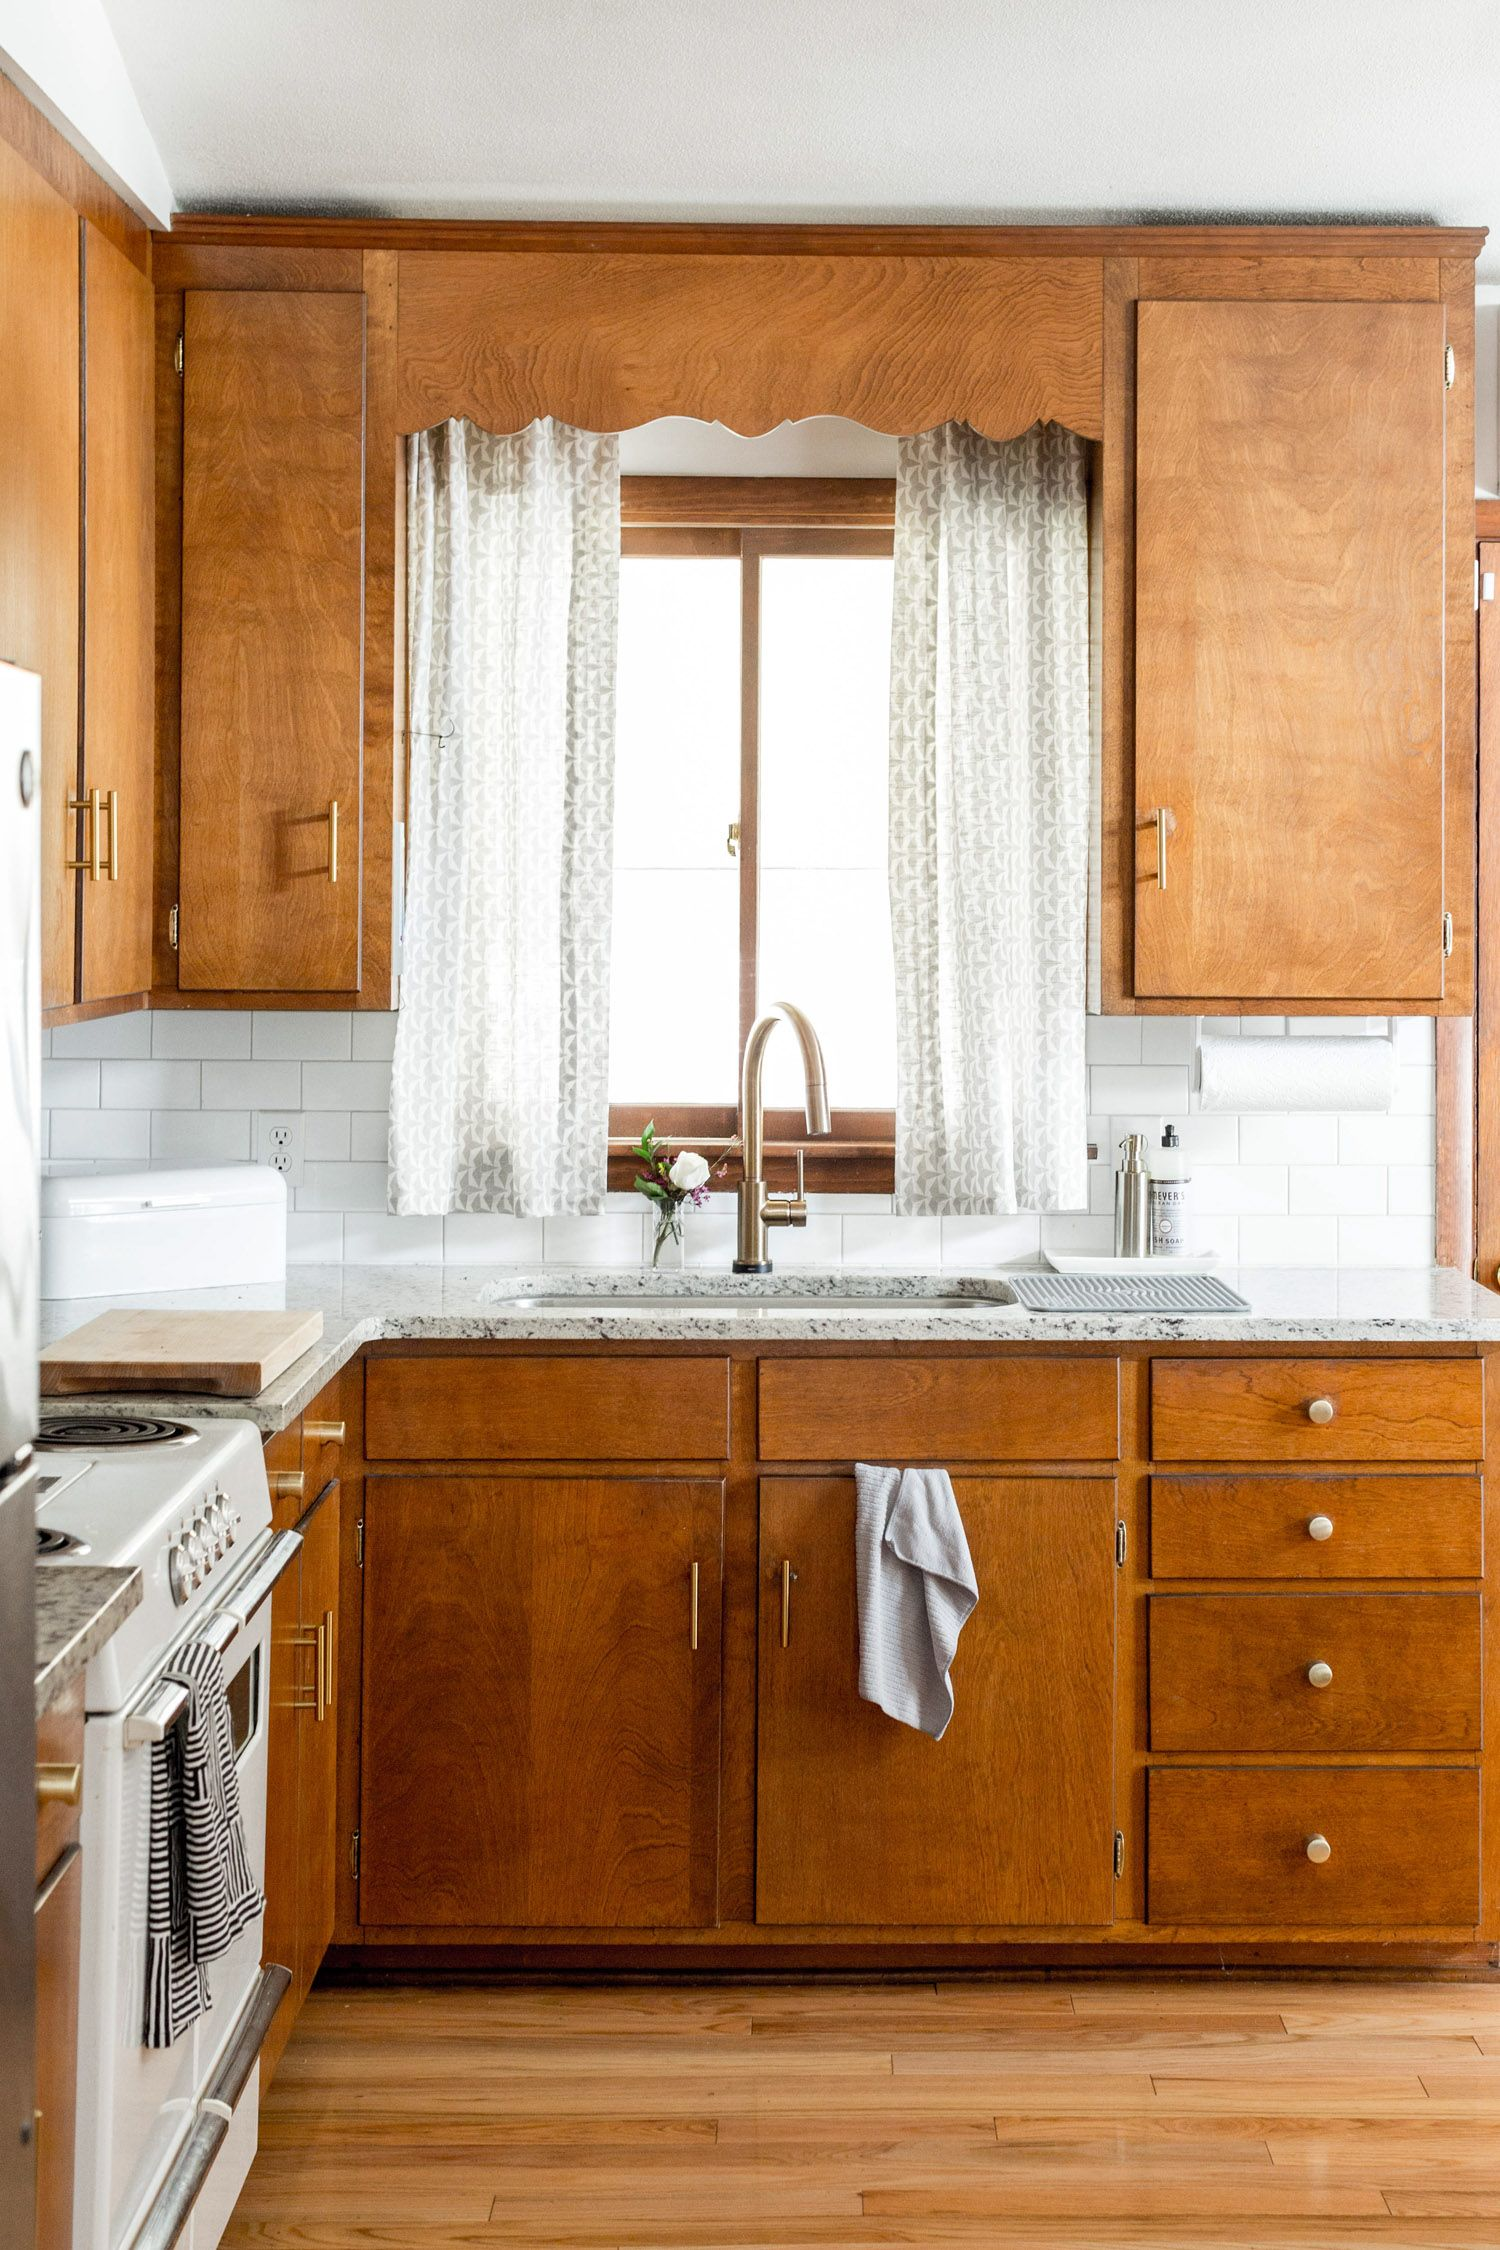 I Guess If I Couldn T Afford New Cabinets Going Mid Century Modern Wouldn T Be A Bad Way To Go Birch Kitchen Cabinets Luxury Kitchen Cabinets Cabinet Decor